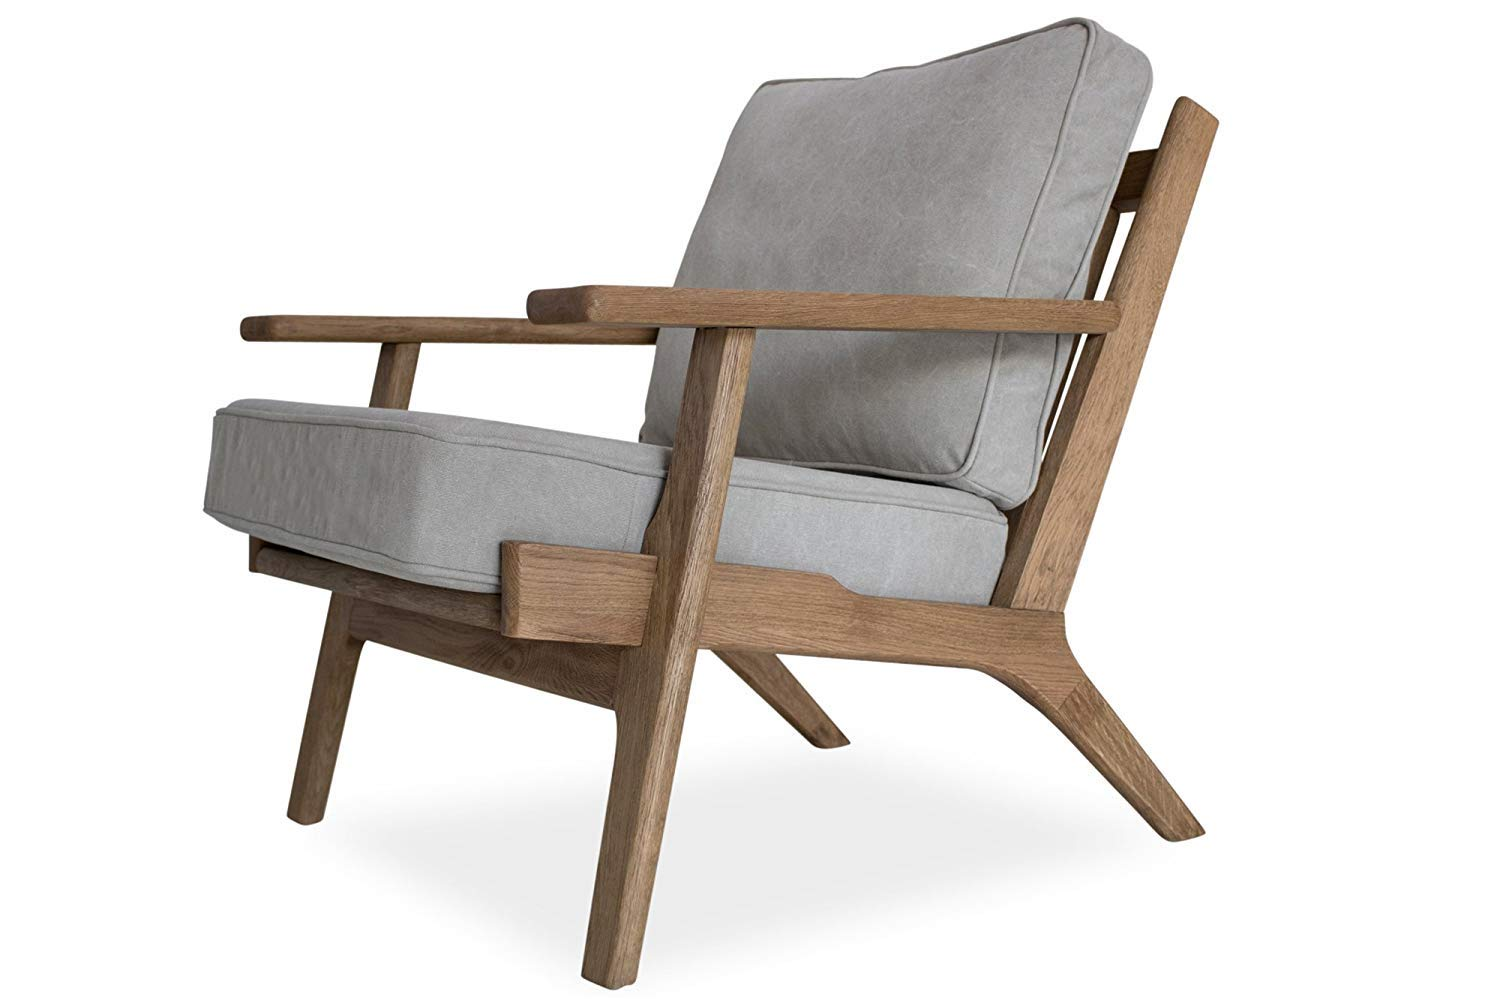 Edloe Finch Webster Mid-Century Modern Accent Lounge Plank Chair, Gray by Edloe Finch